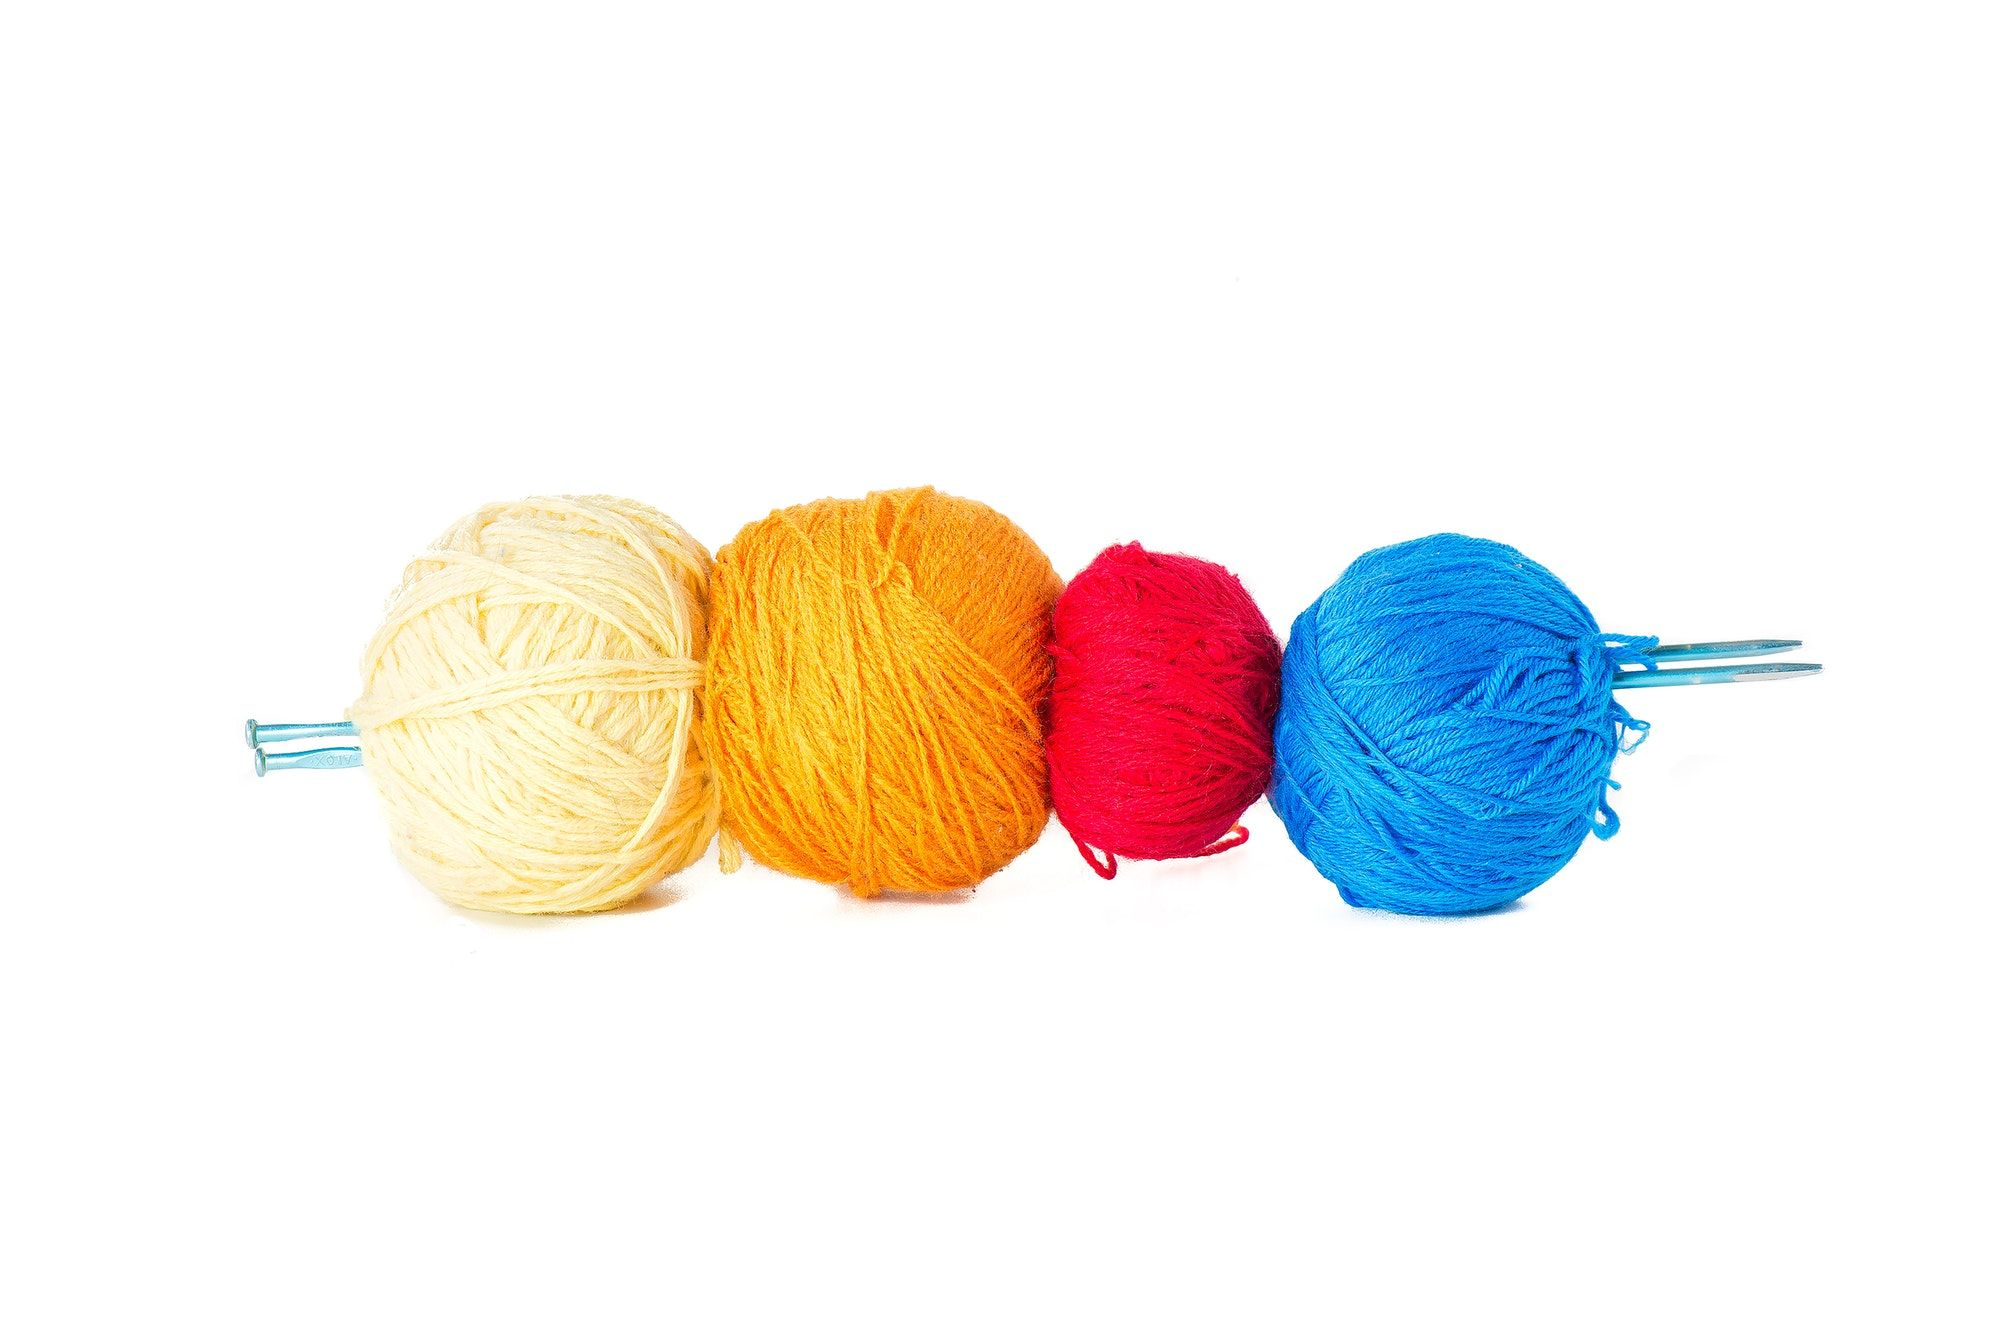 Four balls of colored wool skewered by knitting needles.